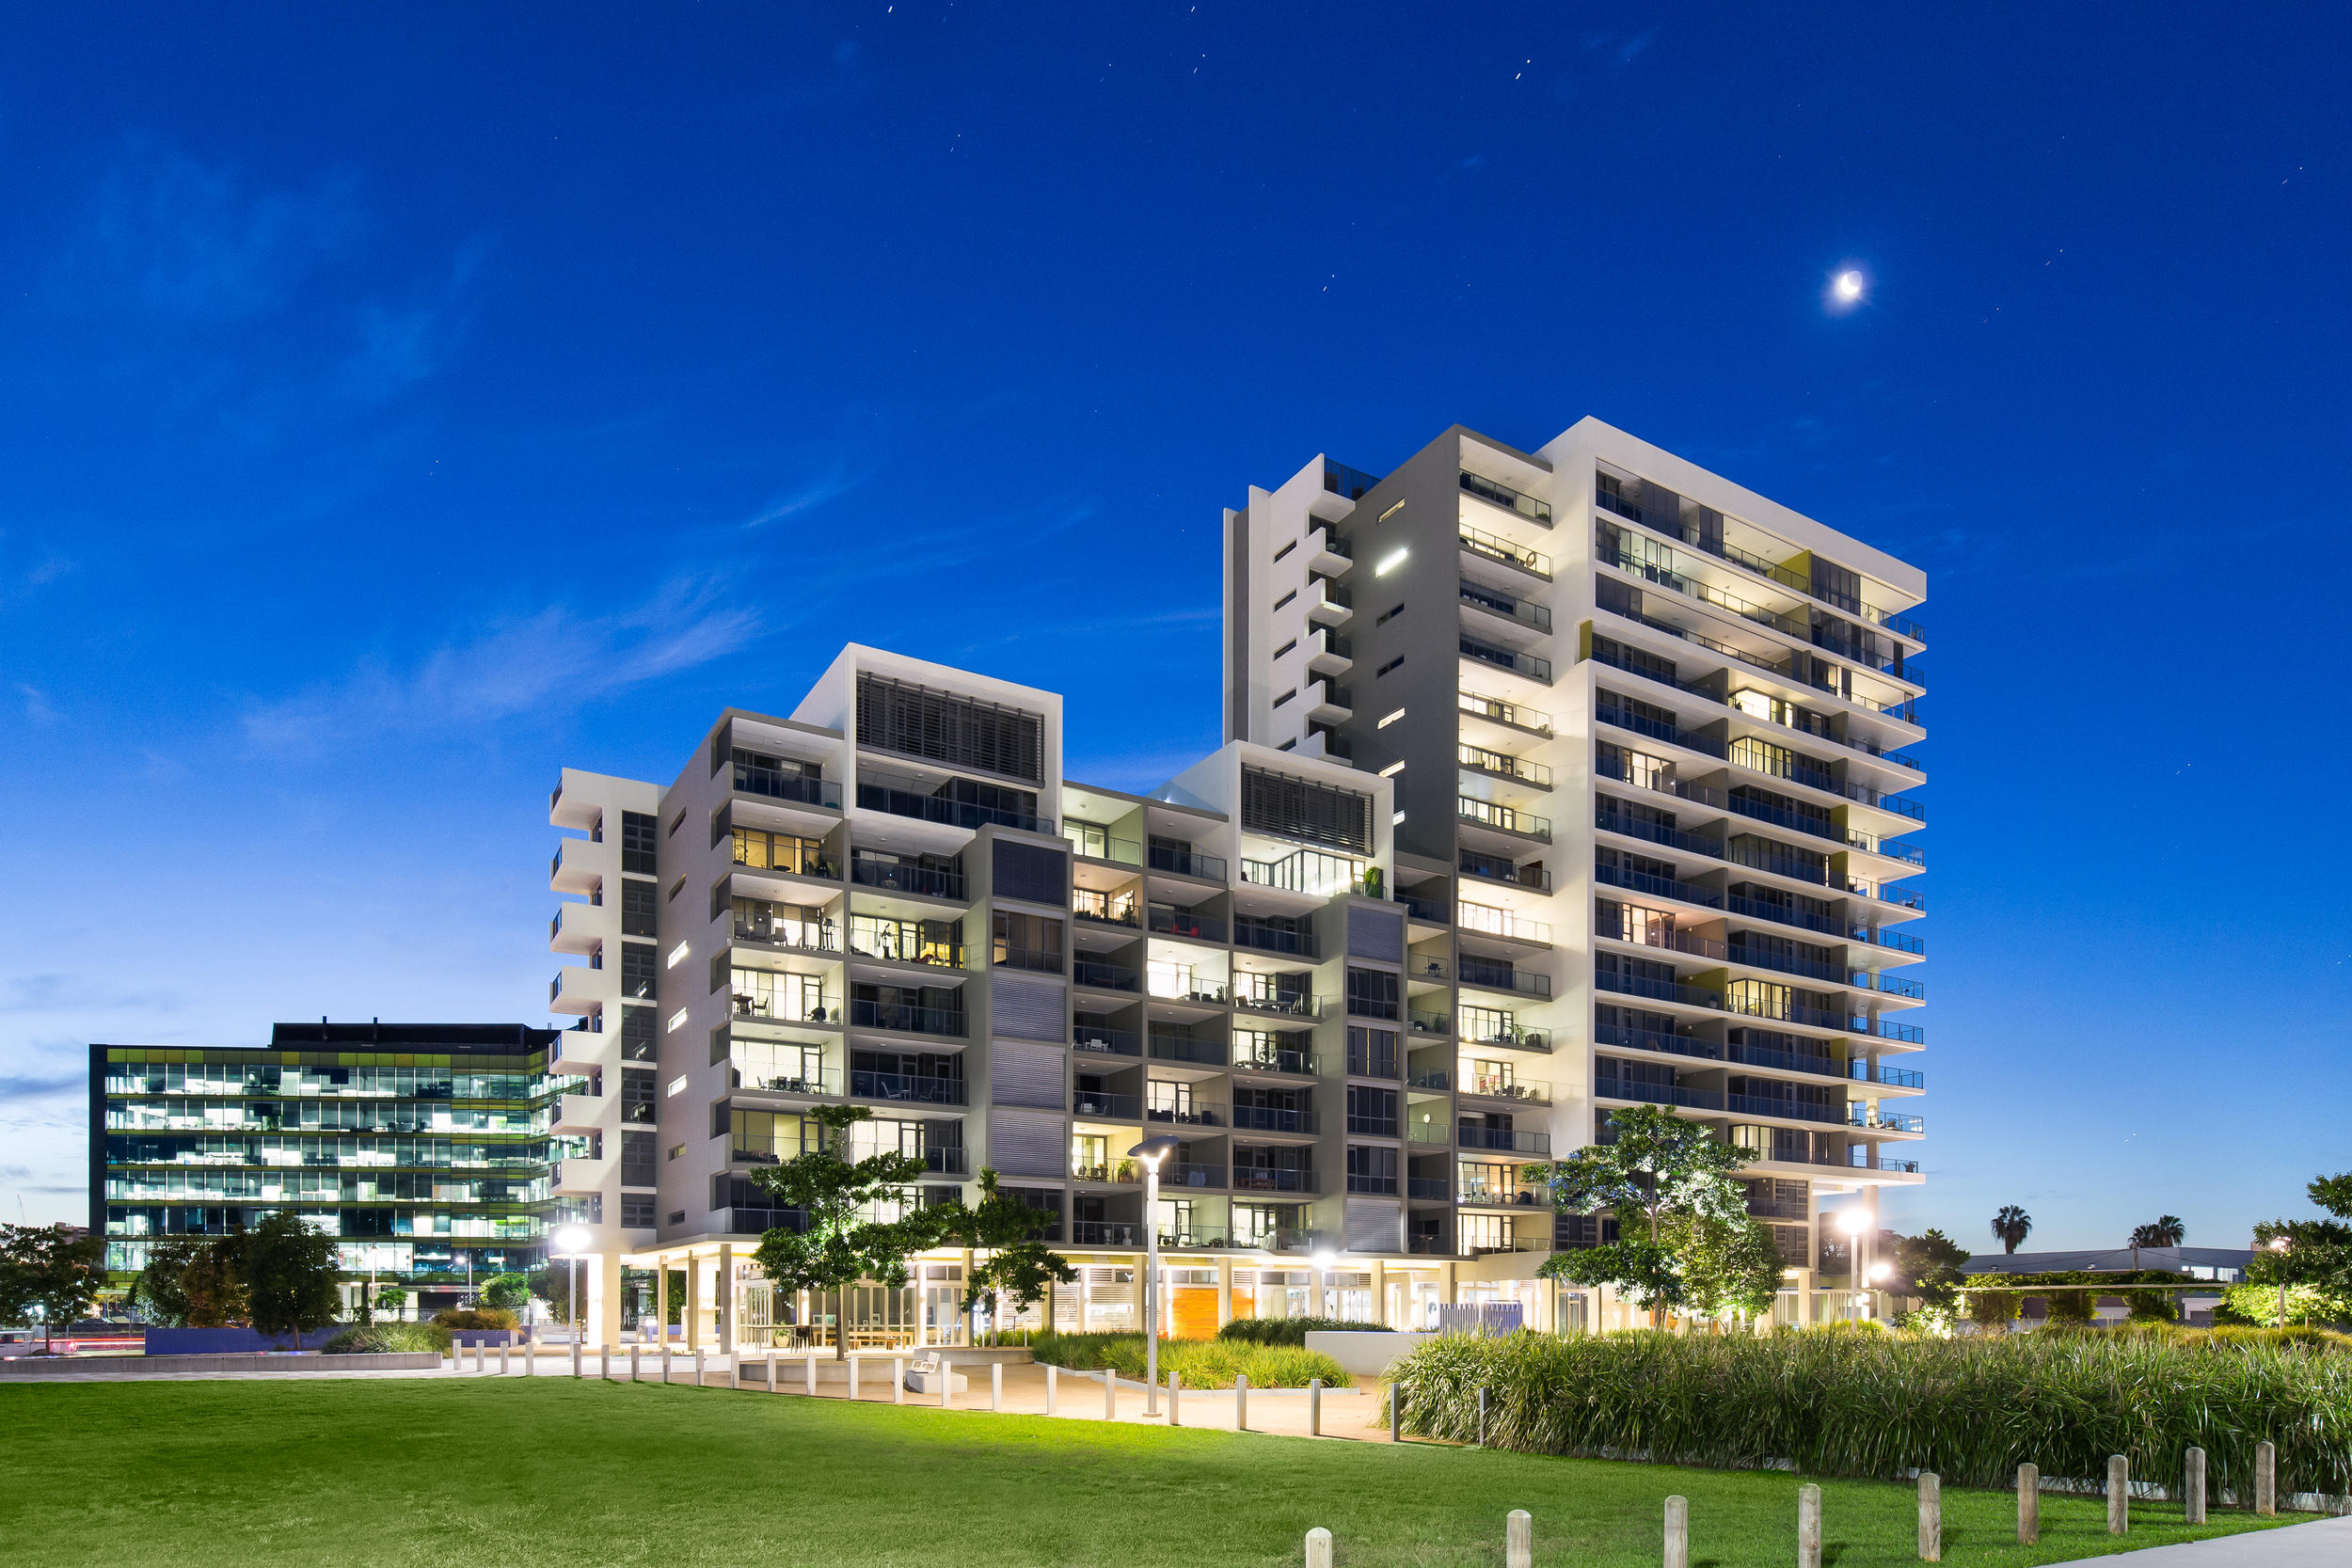 Brisbane Architectural Photography 4